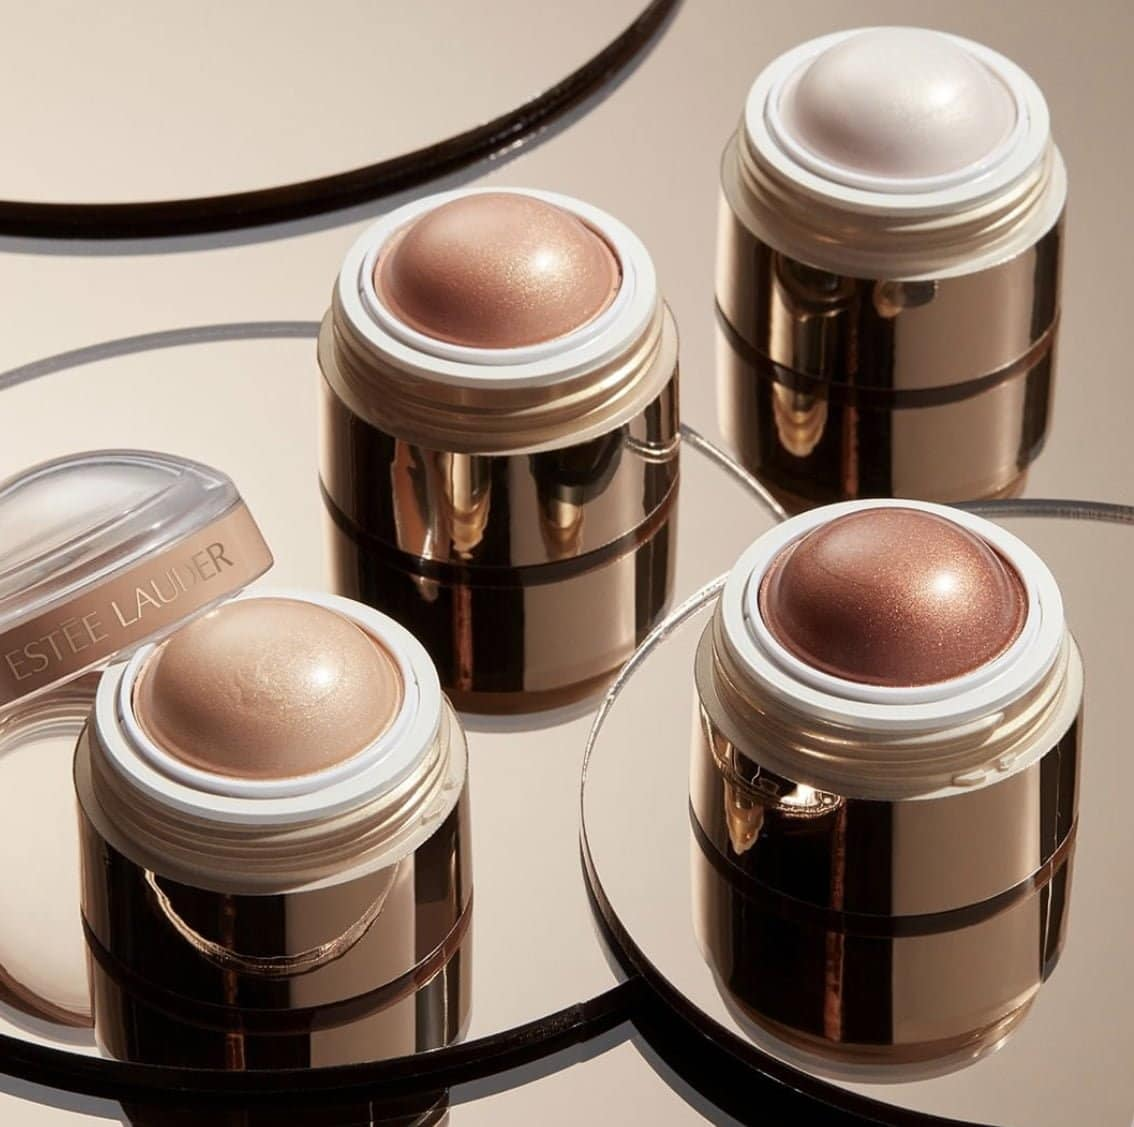 Estee Lauder Pure Color Love Cooling Highlighter